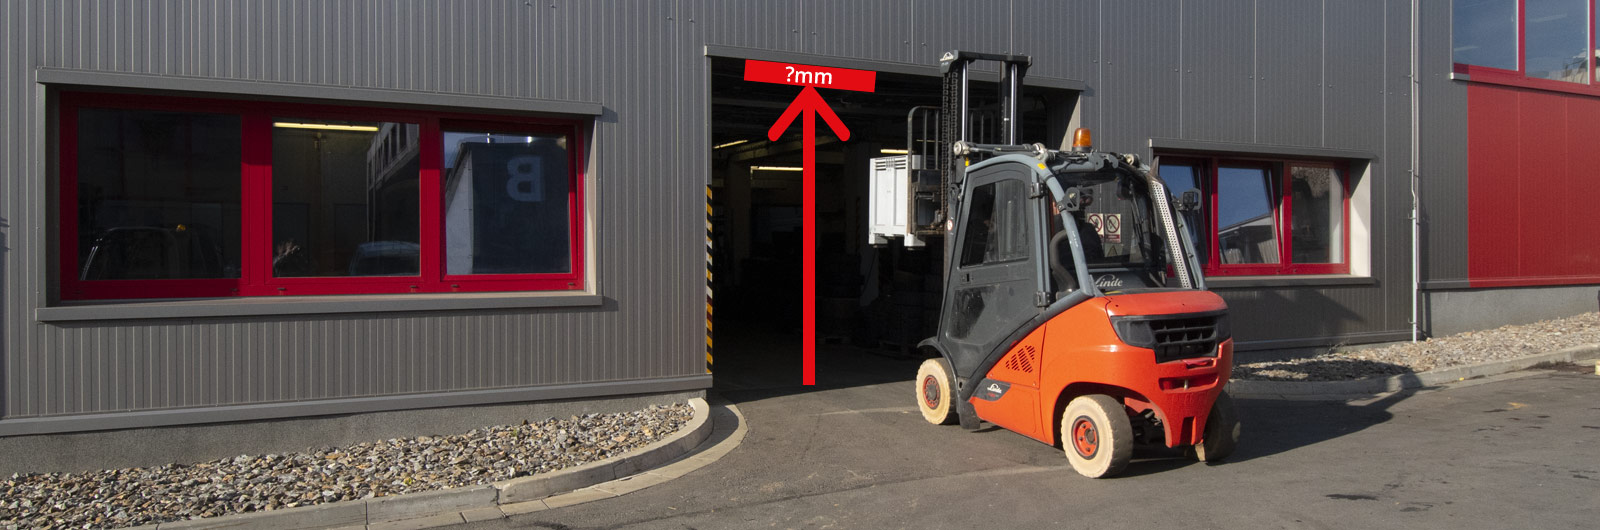 What is the maximum overall height of the forklift?